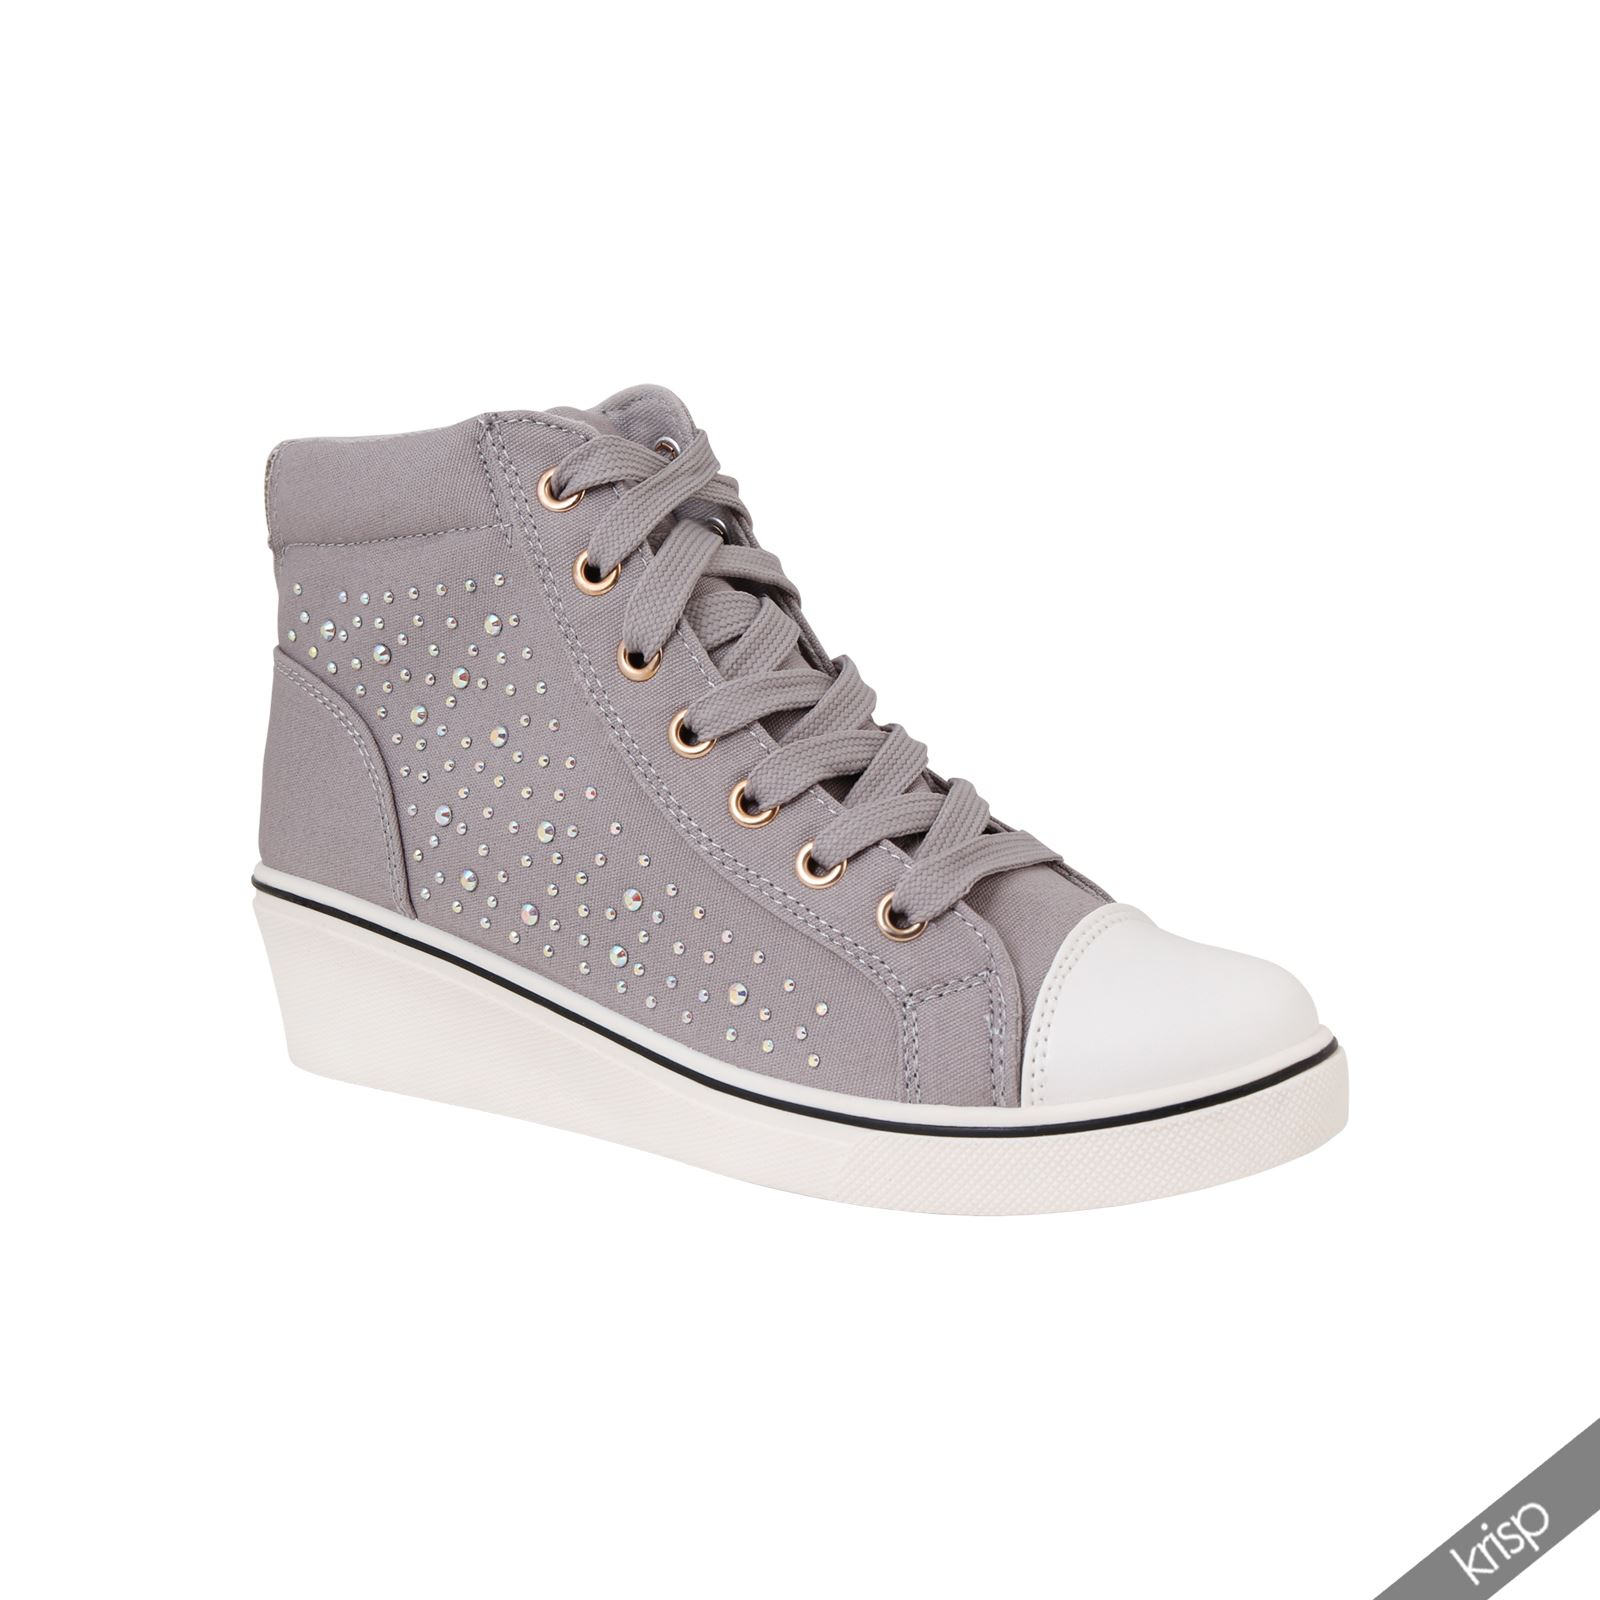 damen stoff sneakers wedges keilabsatz ziersteine strass turnschuhe canvas ebay. Black Bedroom Furniture Sets. Home Design Ideas